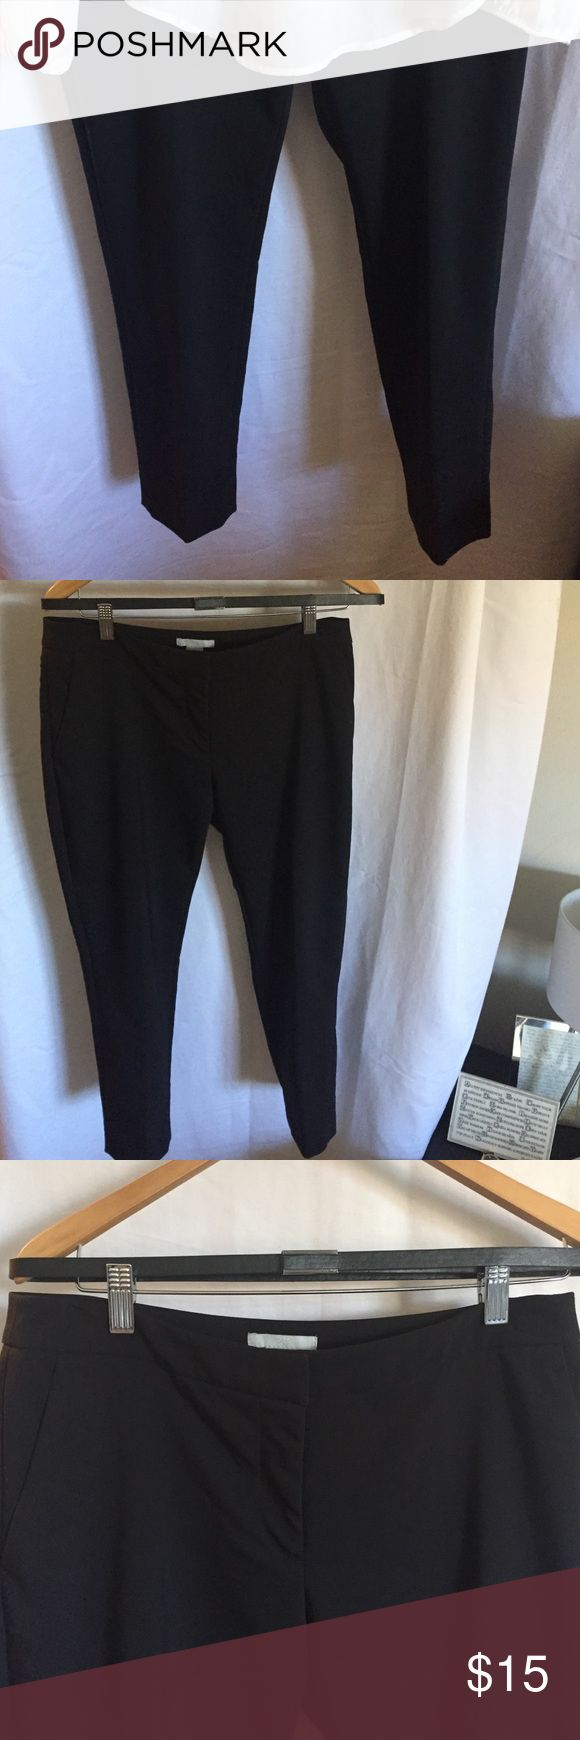 H&M black skinny ankle pants with belt Great and very comfortable black pants H&M Pants Ankle & Cropped